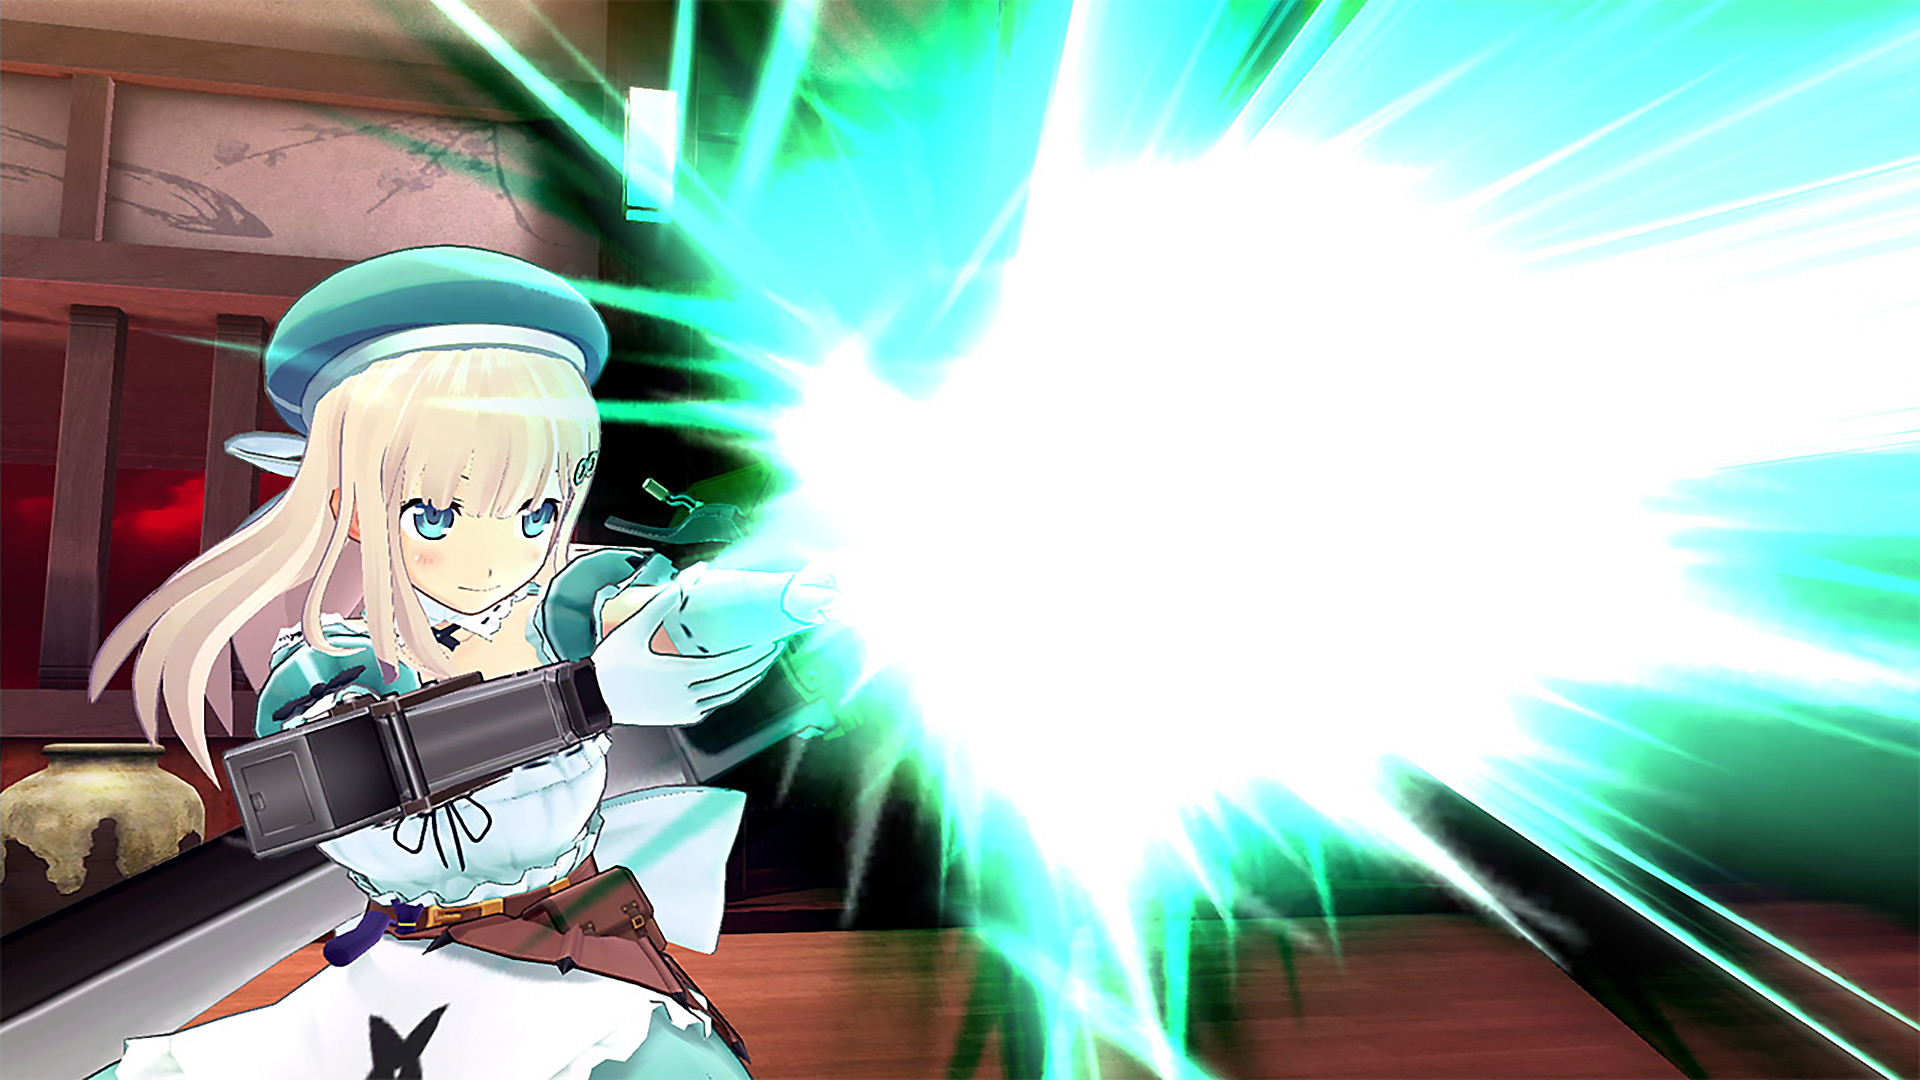 Tela do SENRAN KAGURA Burst Re:Newal